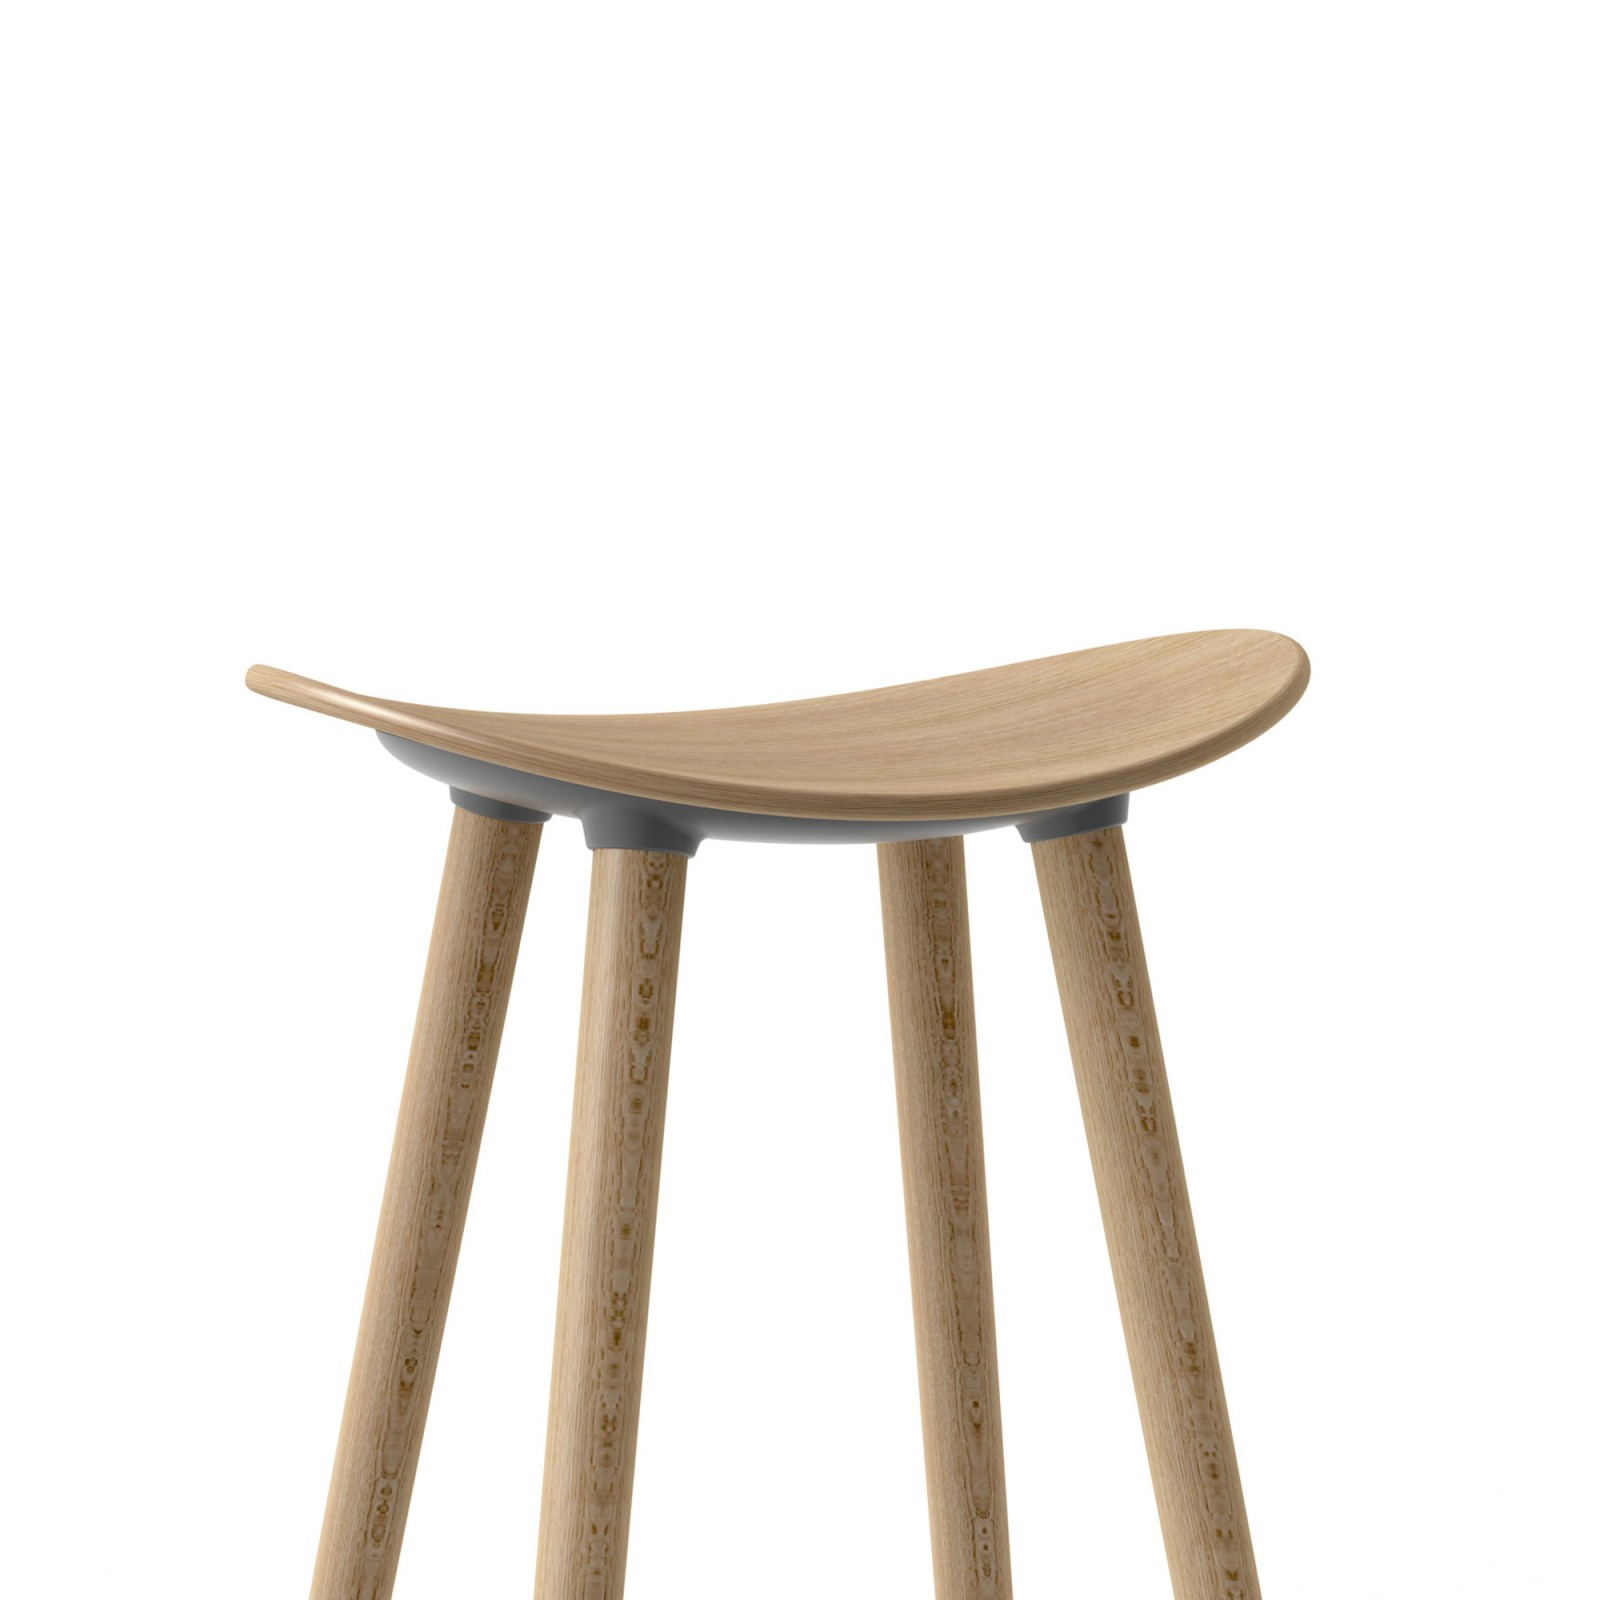 Enjoyable Coma Wood The New Eneas Nordic Stool Caraccident5 Cool Chair Designs And Ideas Caraccident5Info